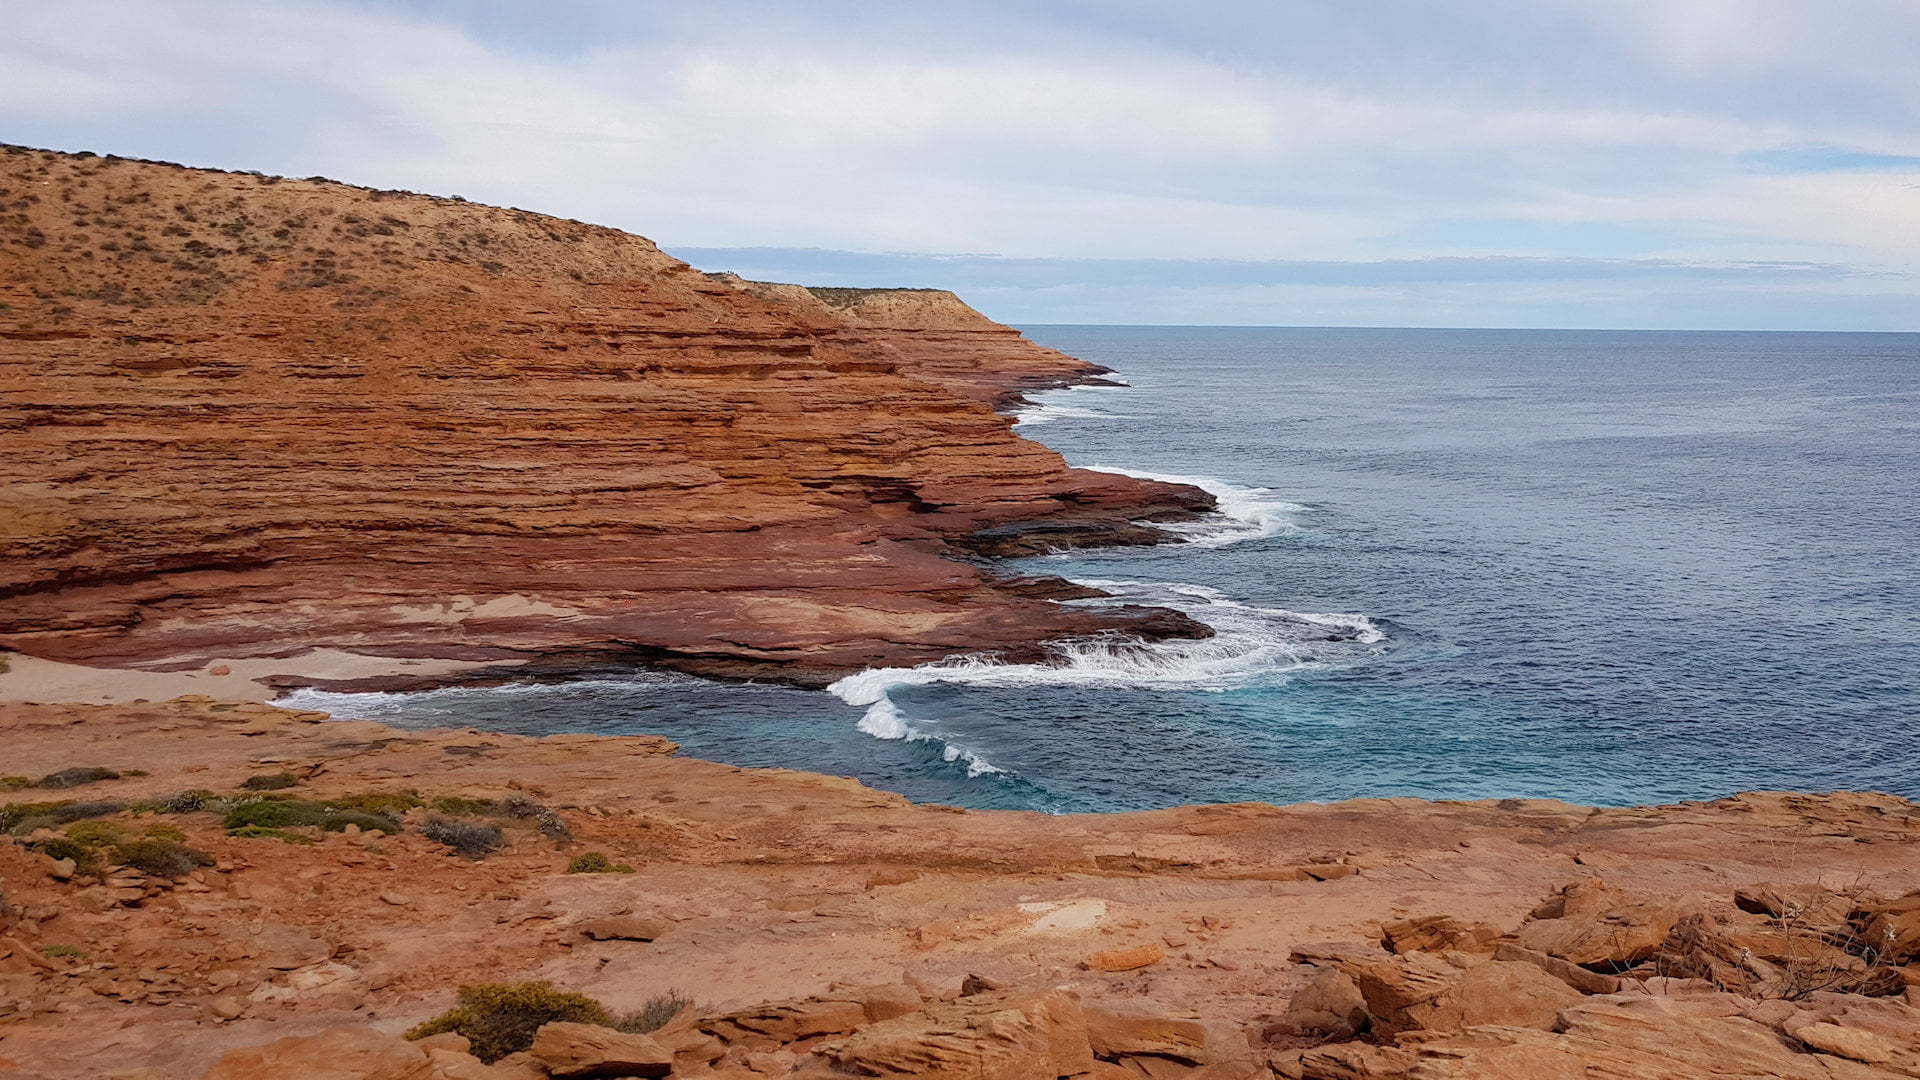 Red sandstone coastline with gorge into the ocean, taken at Pot Alley in Kalbarri National Park in Western Australia